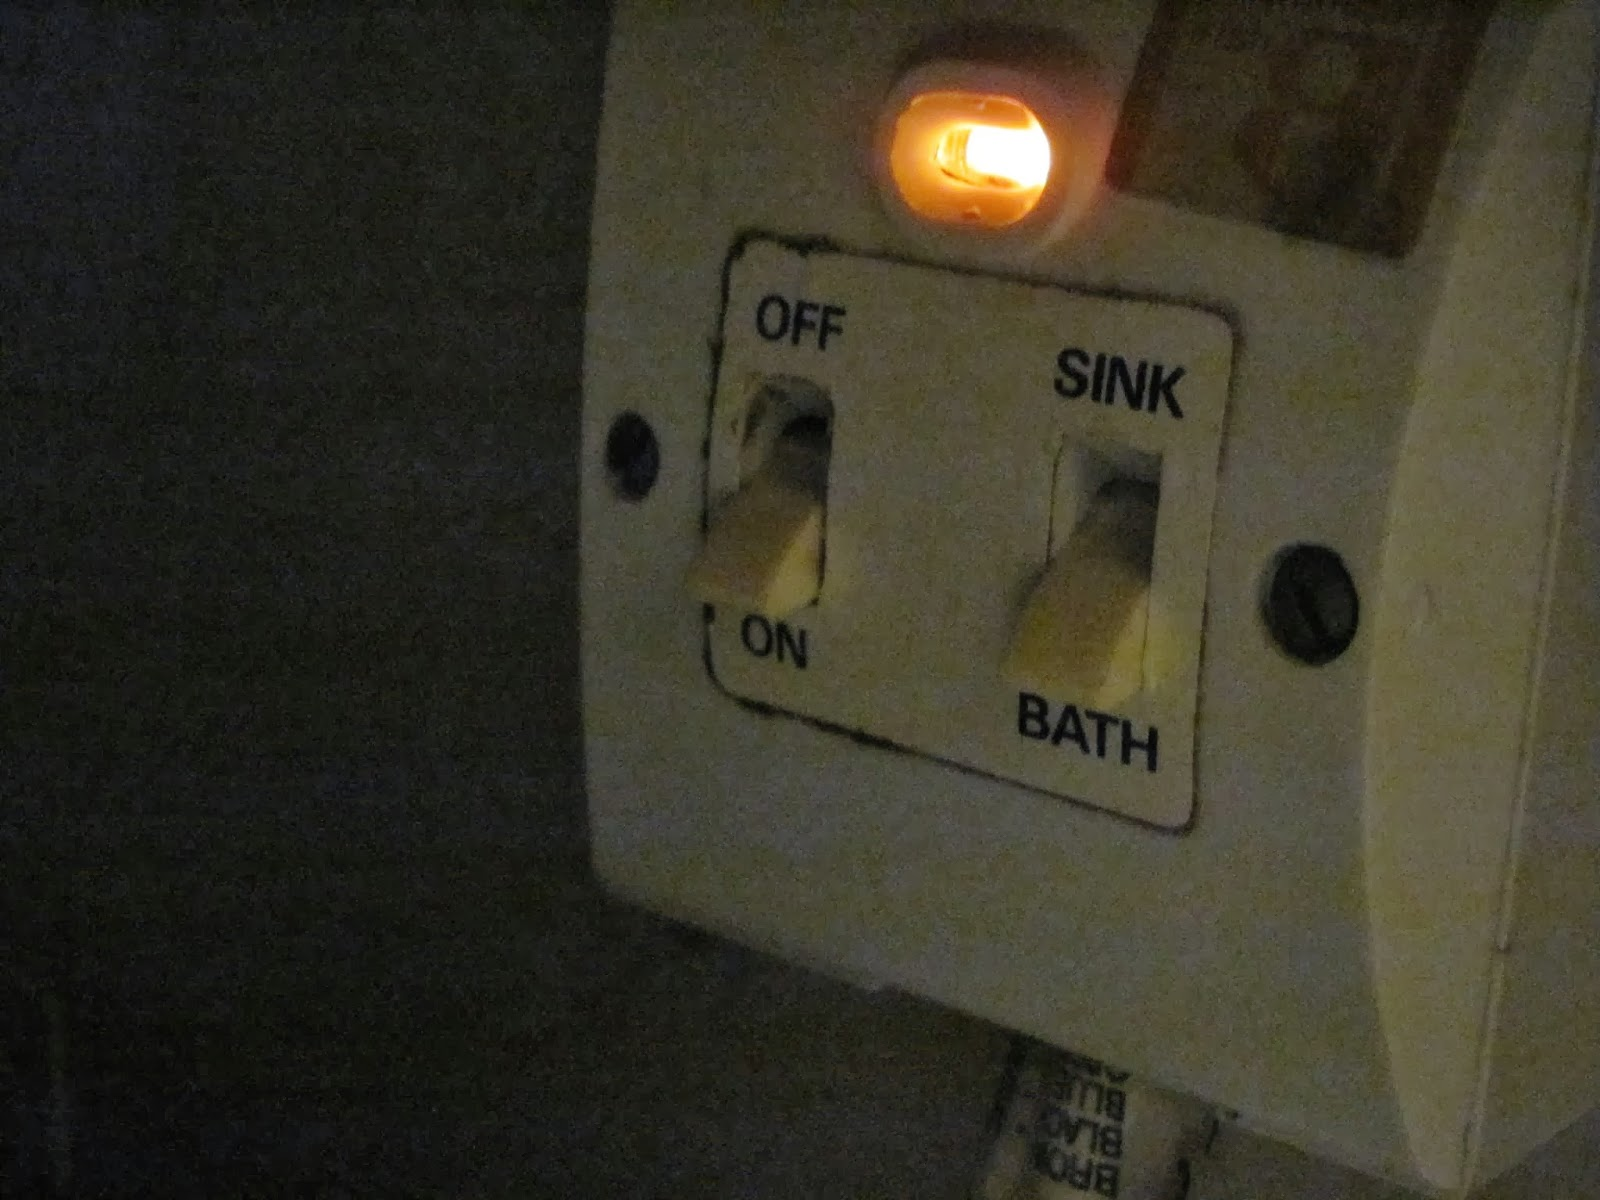 Switches for the immersion water heater used in Dublin, Ireland by Americans.